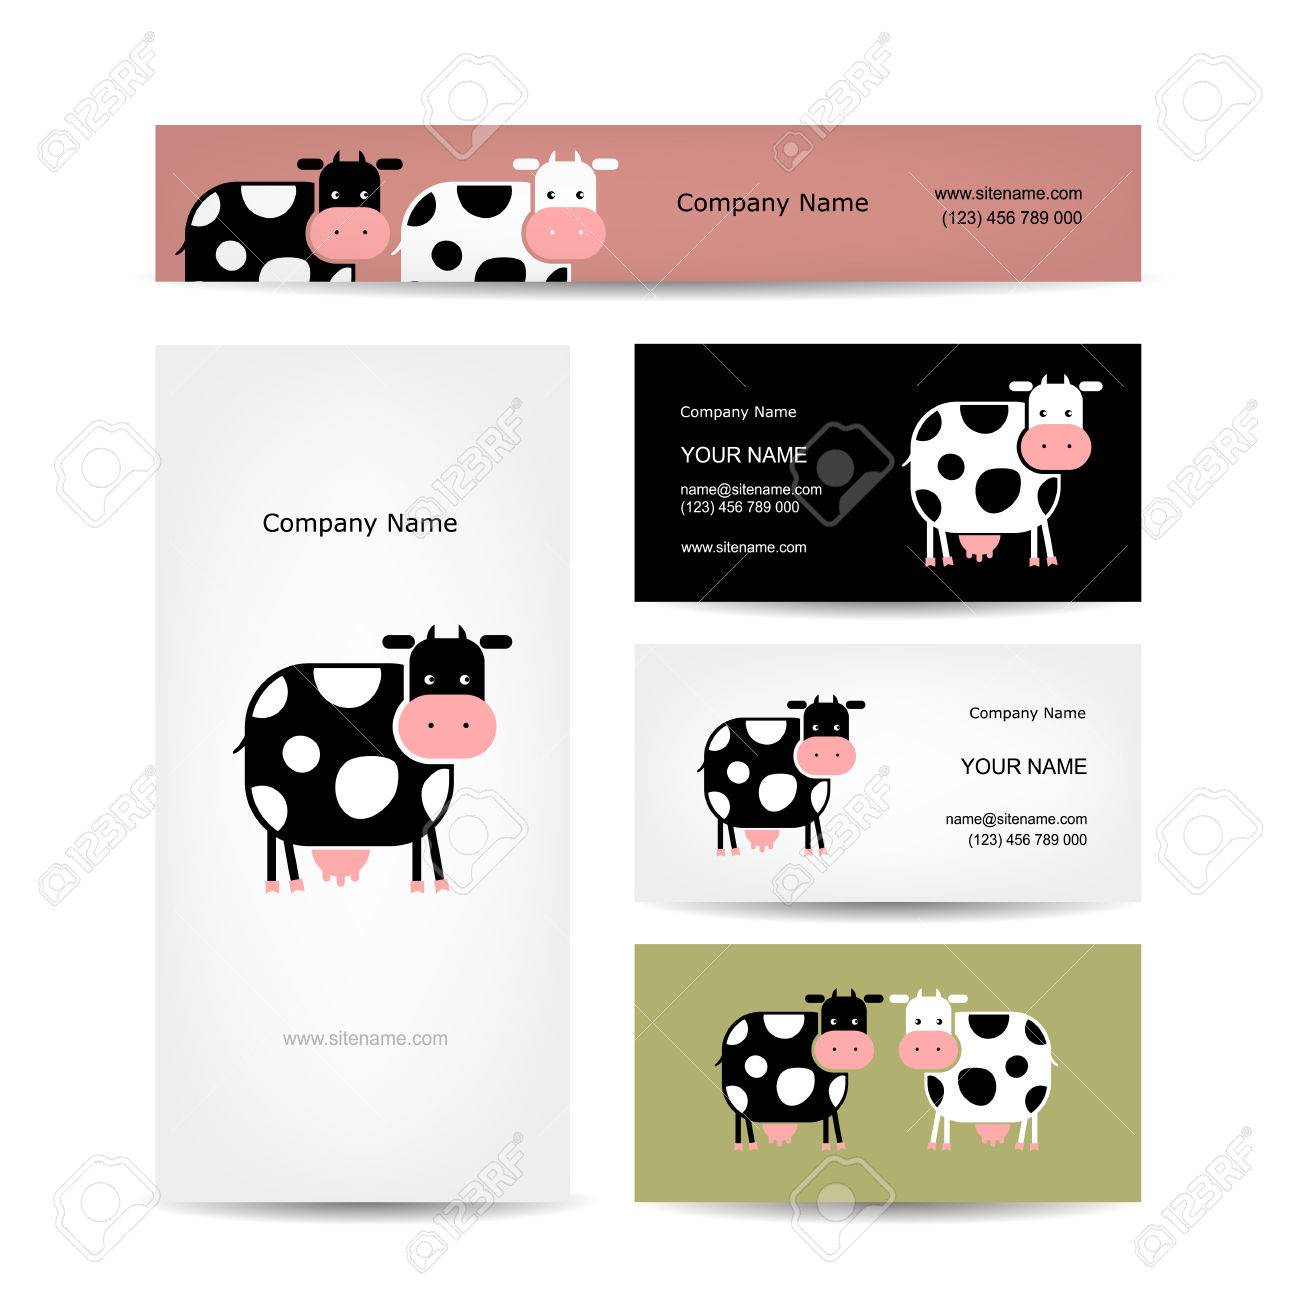 Business Cards Design With Funny Cow Royalty Free Cliparts, Vectors ...